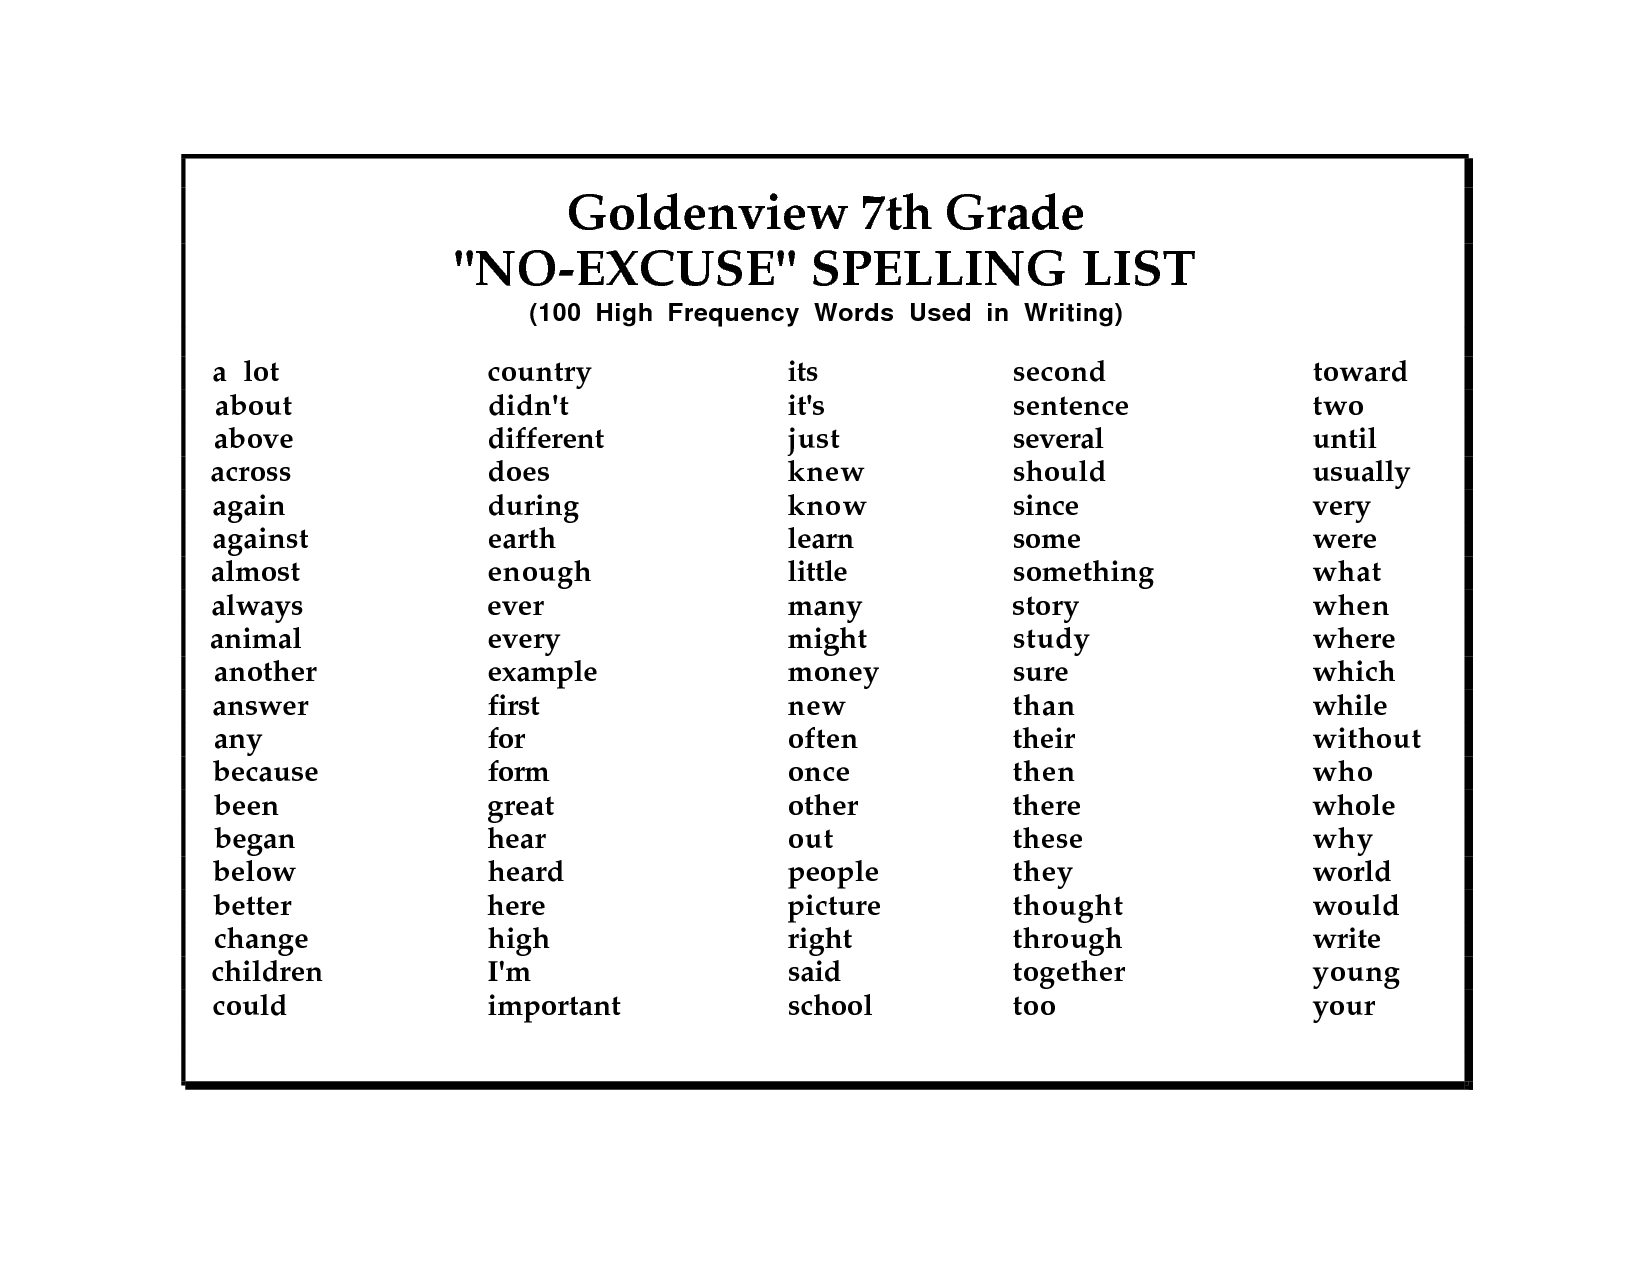 8th Grade Sight Words List   13 Best Images of Vocabulary Worksheets For  3rd Grade - 3rd Grade Language Arts…   Spelling words list [ 1275 x 1650 Pixel ]